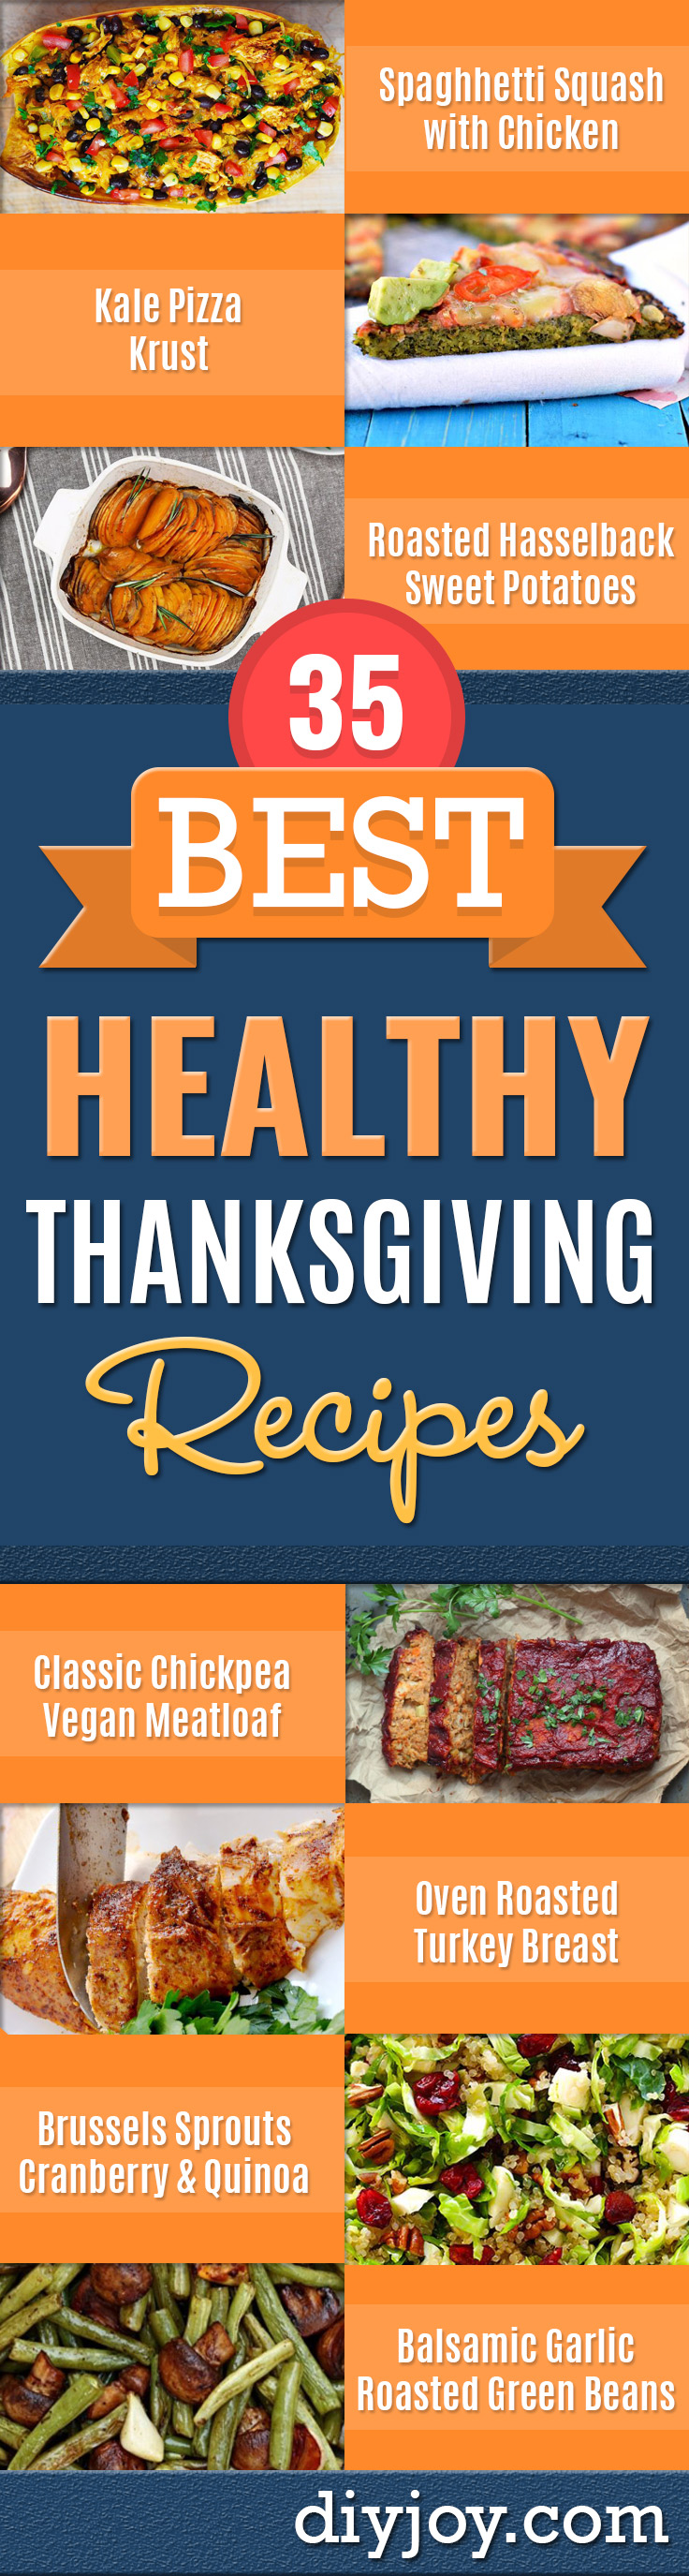 Healthy Thanksgiving Recipes - Low fat Versions of Your Favorite Holiday Recipe for Turkey, Stuffing, Gravy, Pie and Desserts, Appetizers, Vegetables and Side Dishes like Spinach, Broccoli, Cranberries, Mashed Potatoes, Sweet Potatoes and Green Beans - Easy and Quick Last Minute Thanksgiving Recipes for Low Carb, Low Fat and Clean Eating Diet